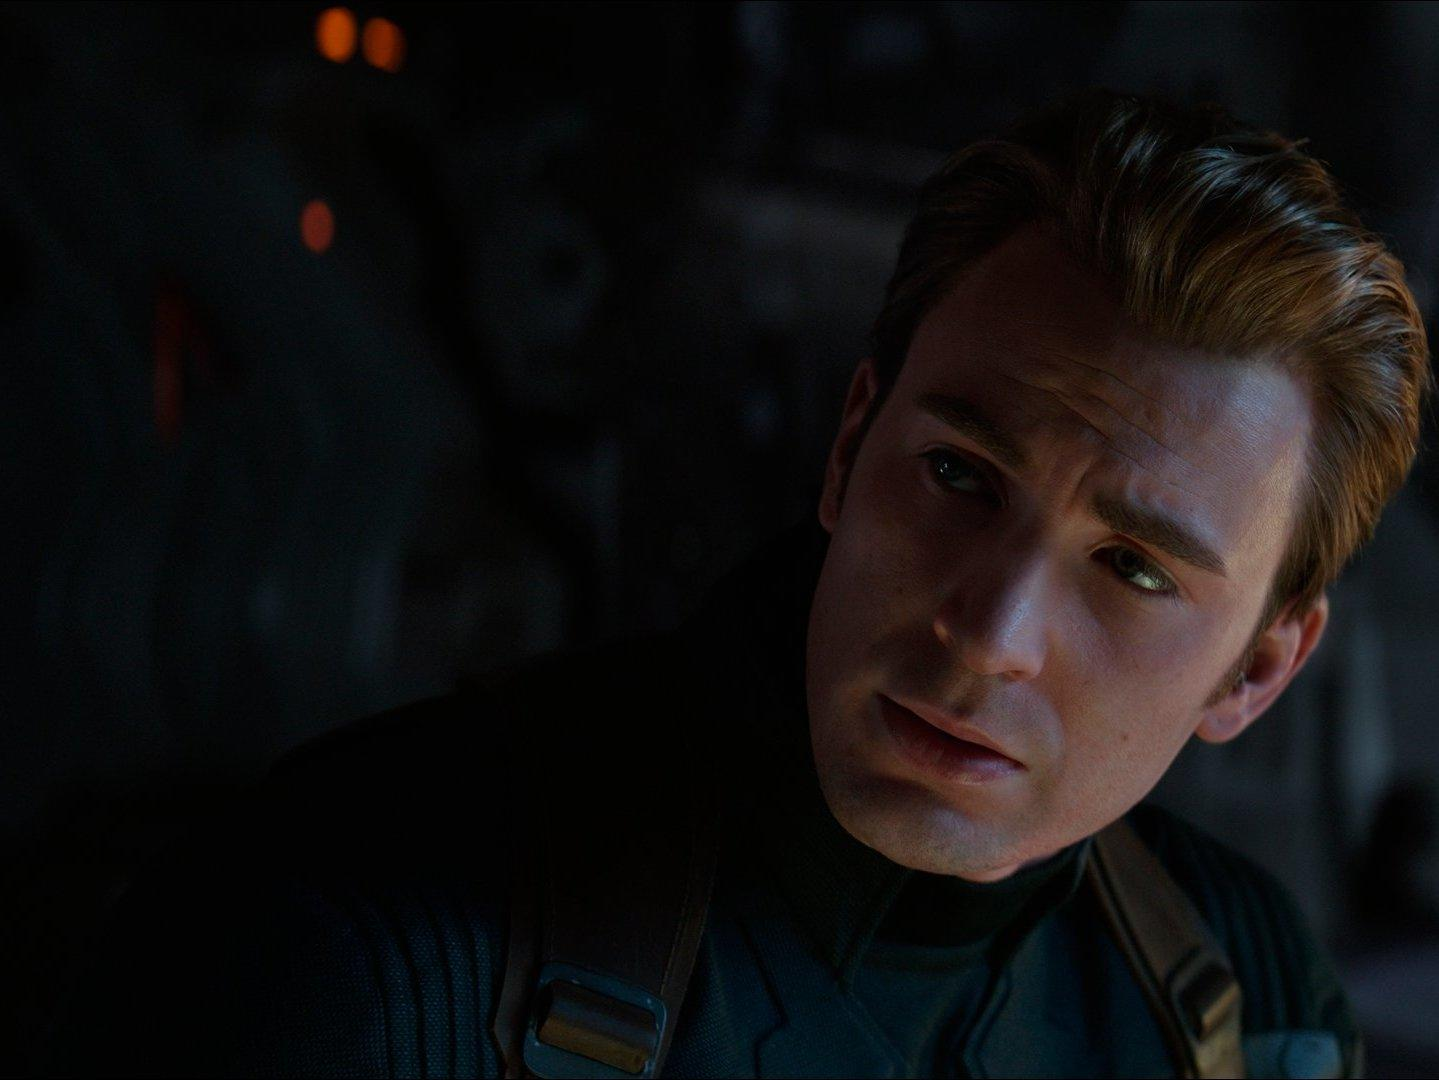 Avengers: Endgame reviews round-up: Critics rave about epic conclusion to decade of Marvel films